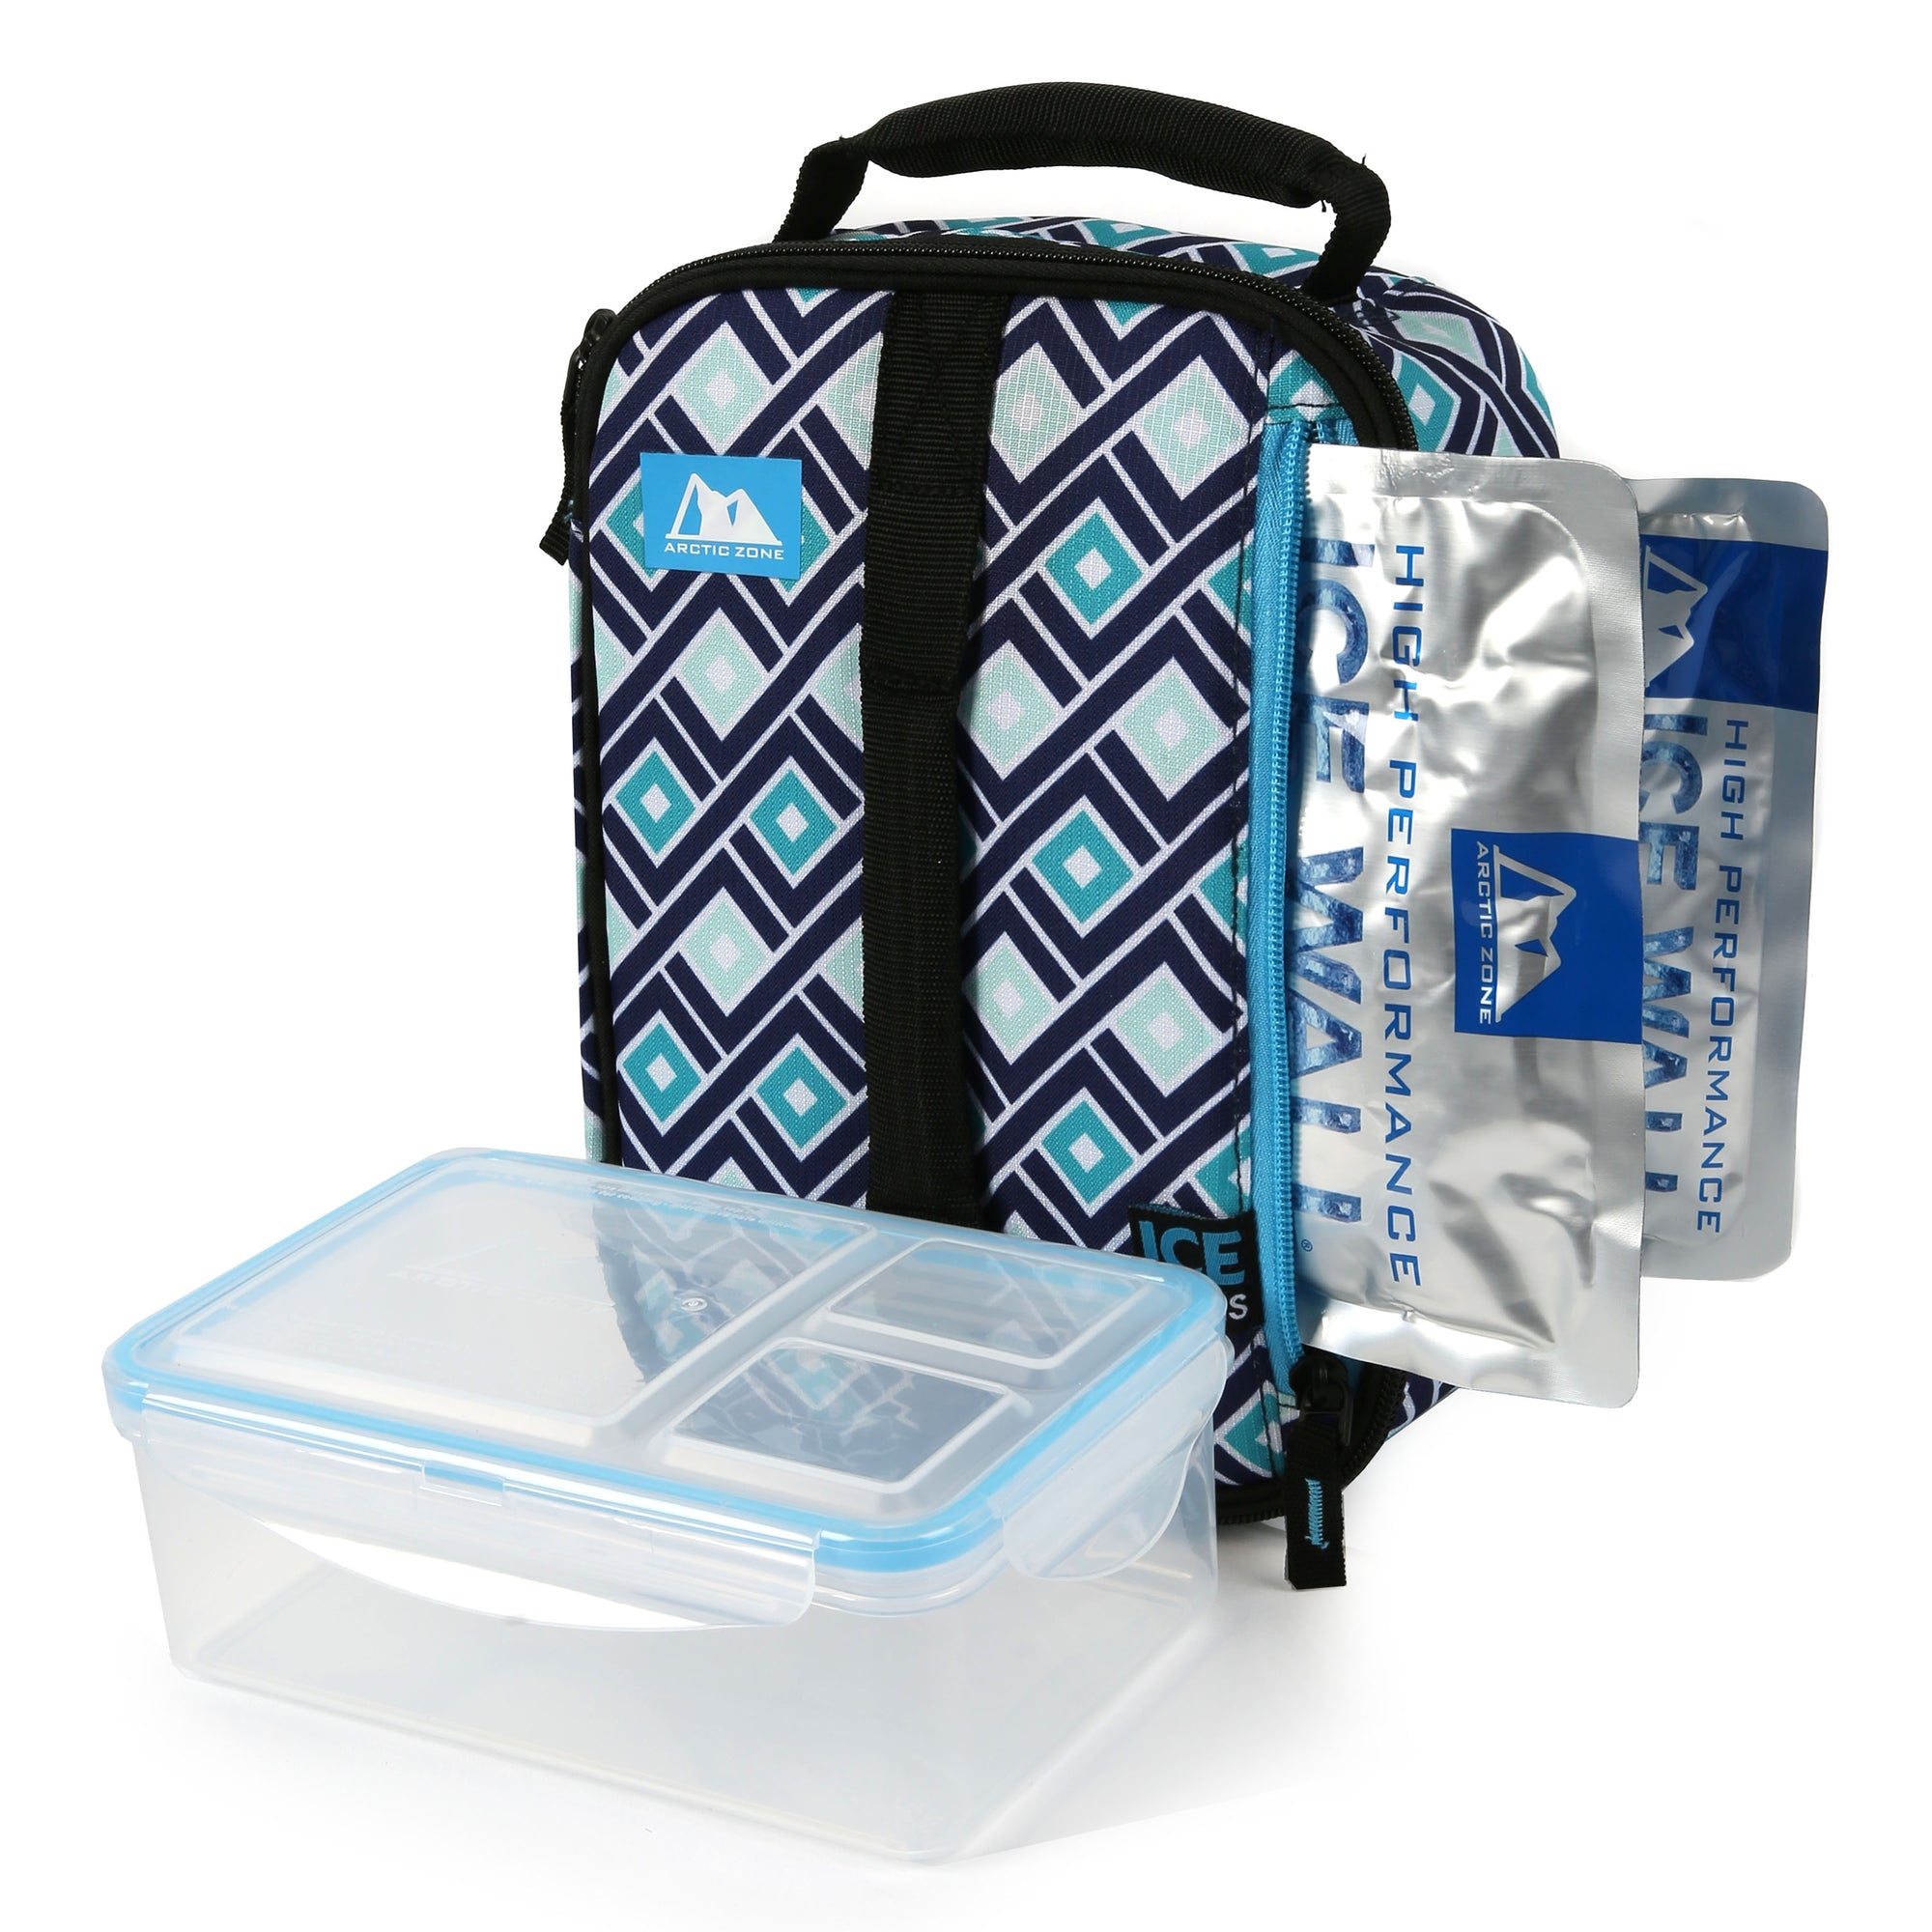 Arctic Zone® Ice Walls Upright Box - Tabitha Diamonds - Lunch box with ice walls and container